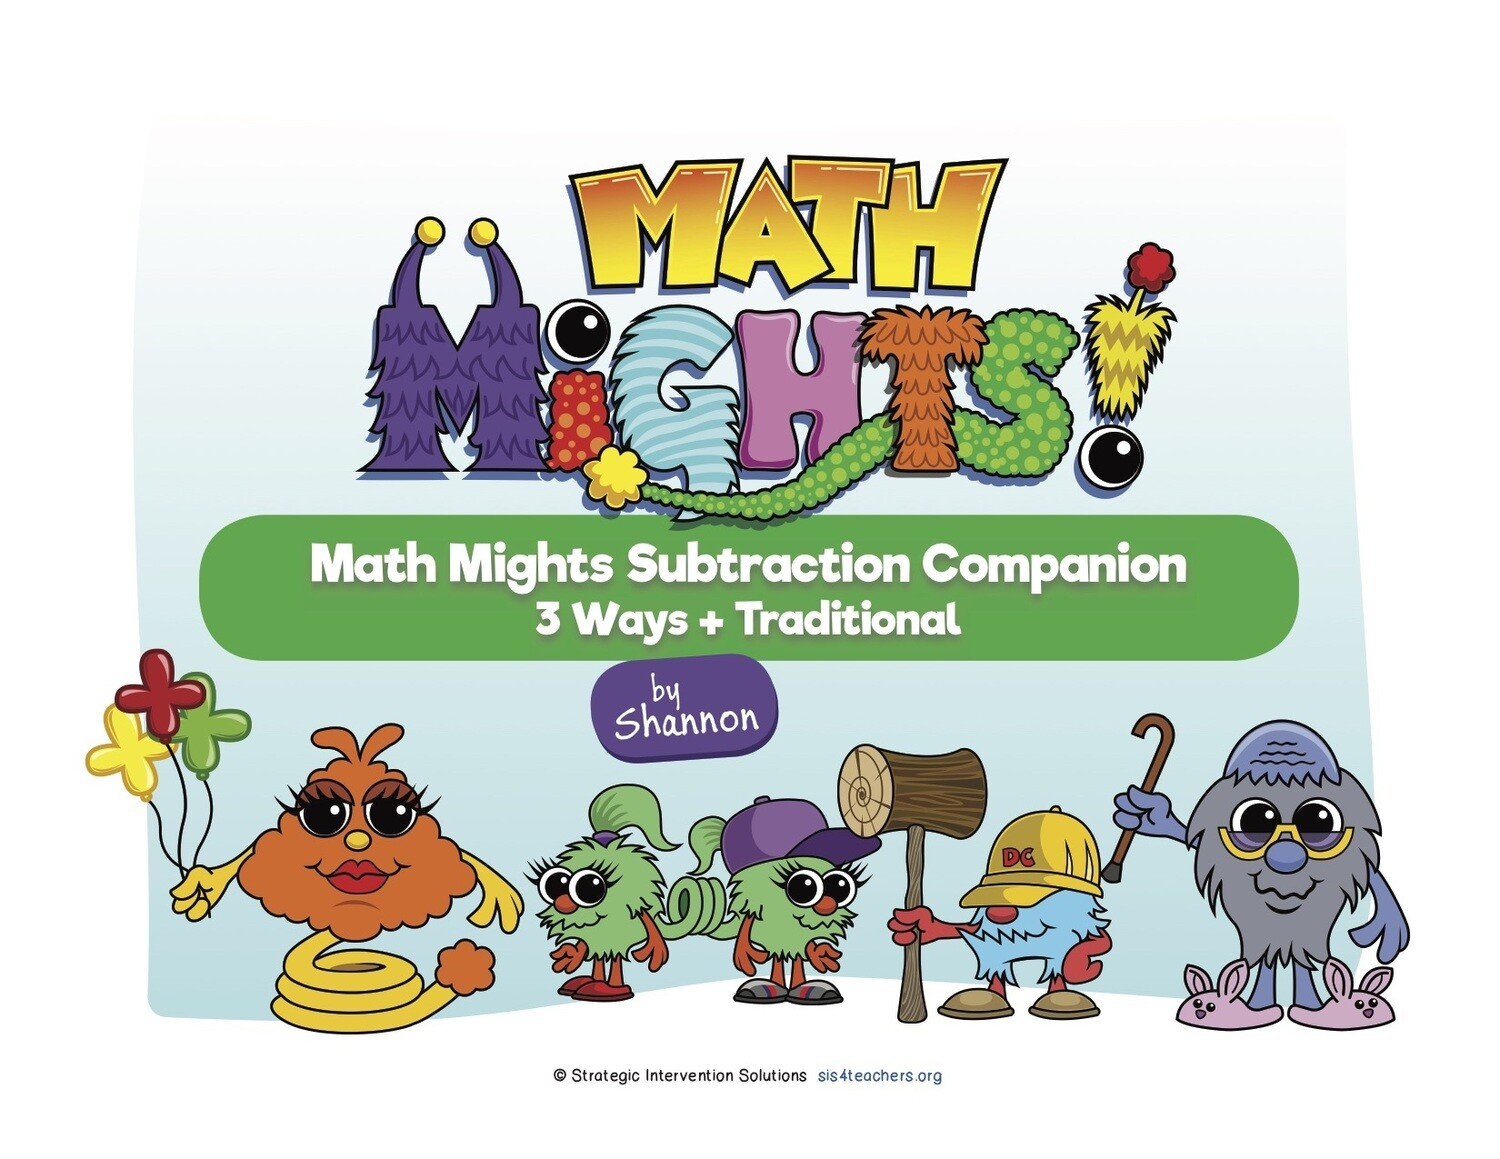 Math Mights Download Companion: Subtraction Strategies